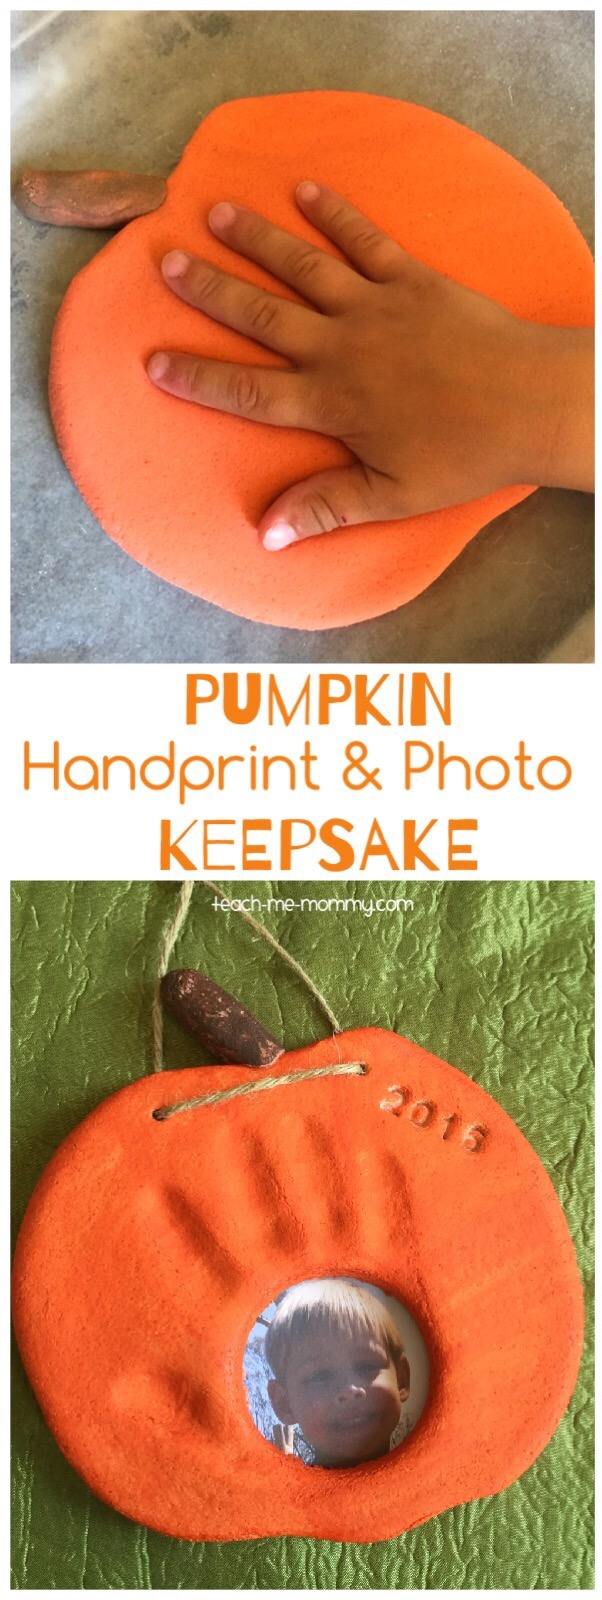 Never forget how adorable your little one looked this Halloween with this simple Halloween photo keepsake. Here you'll find a variety of easy Halloween crafts for your kids, toddlers and preschoolers. #Howweelearn #Halloweencrafts #Craftsforkids